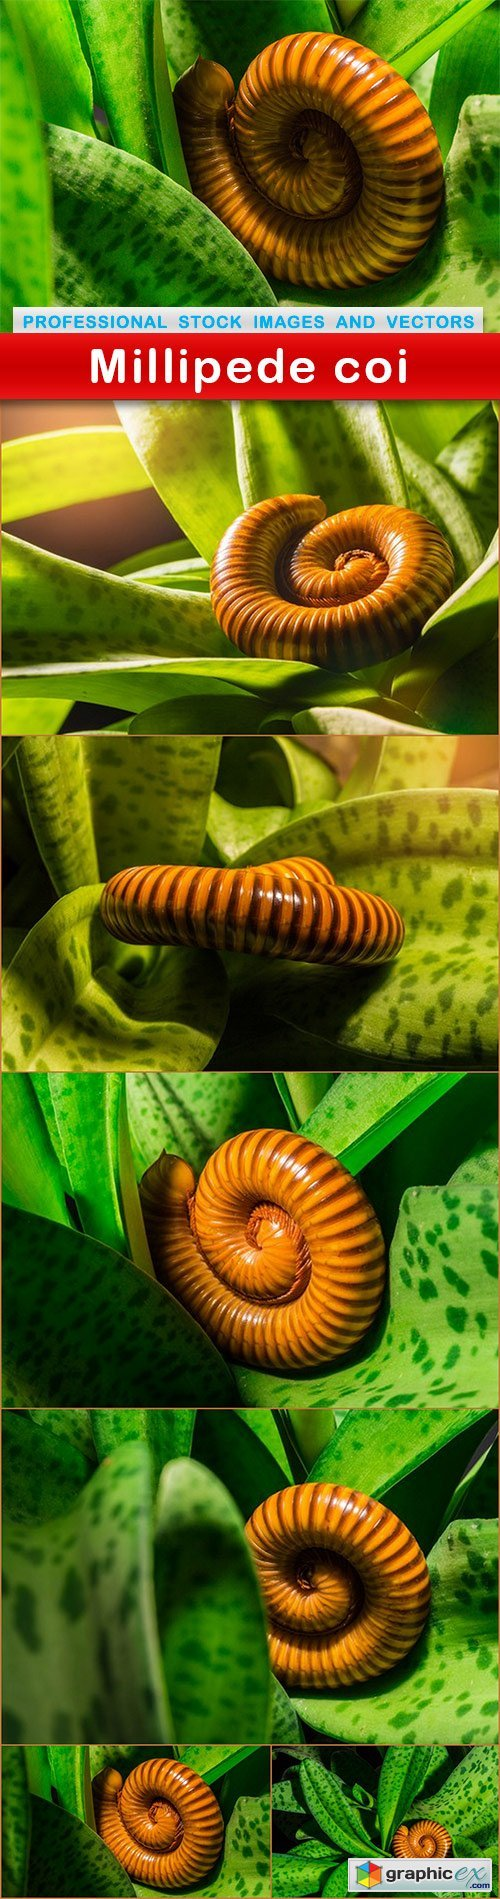 Millipede coi - 7 UHQ JPEG